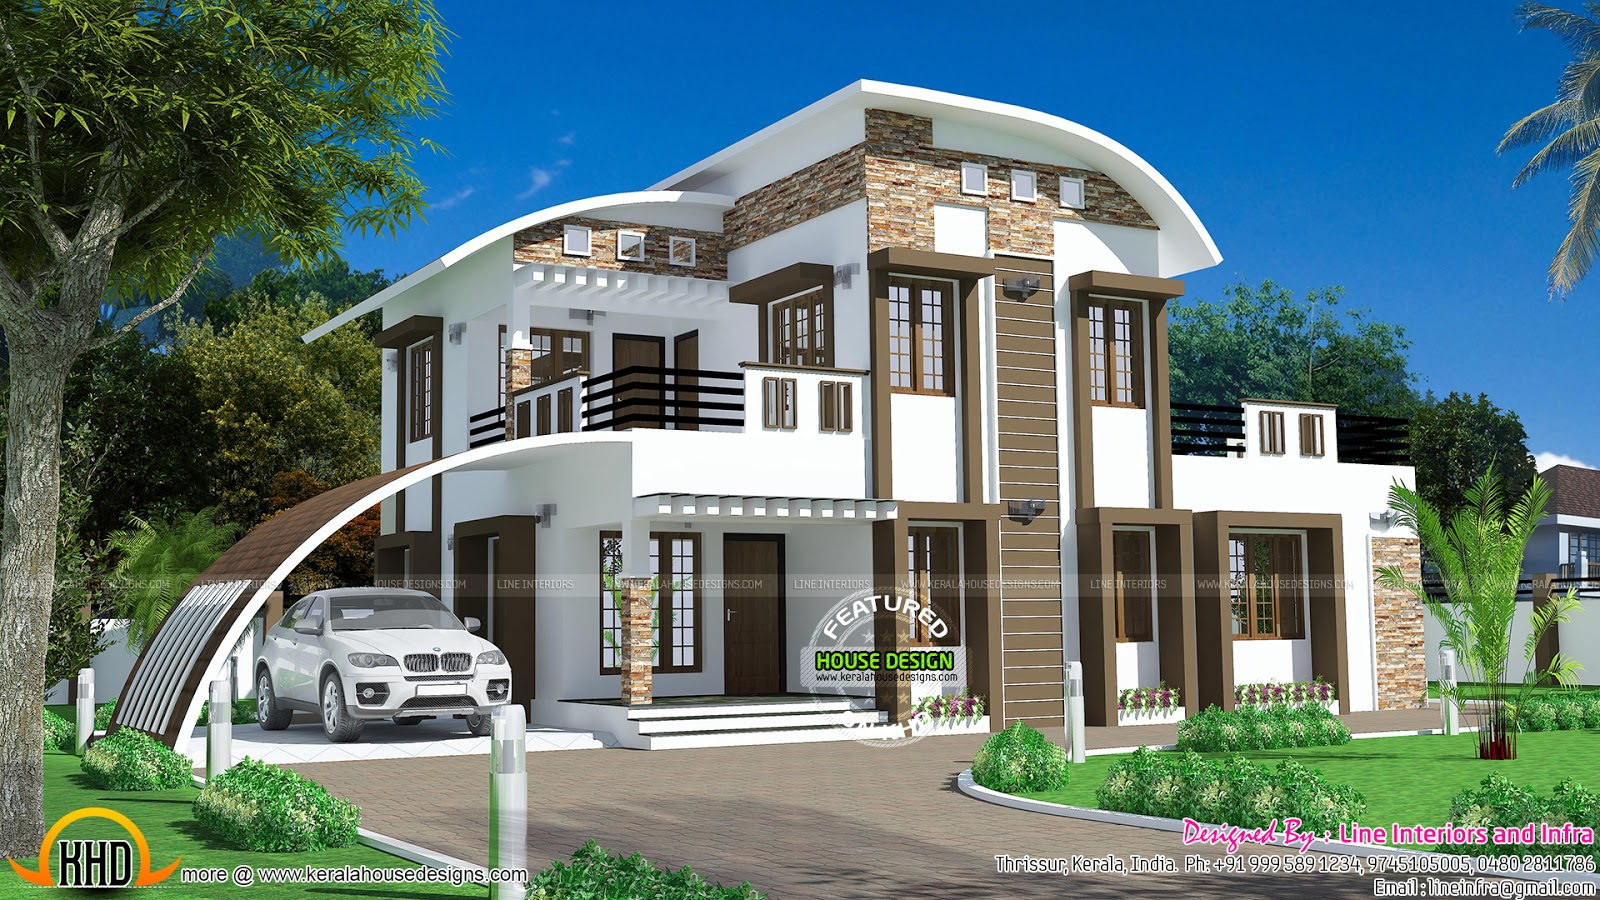 Modern house plans curved roof front design for Curved roof house plans